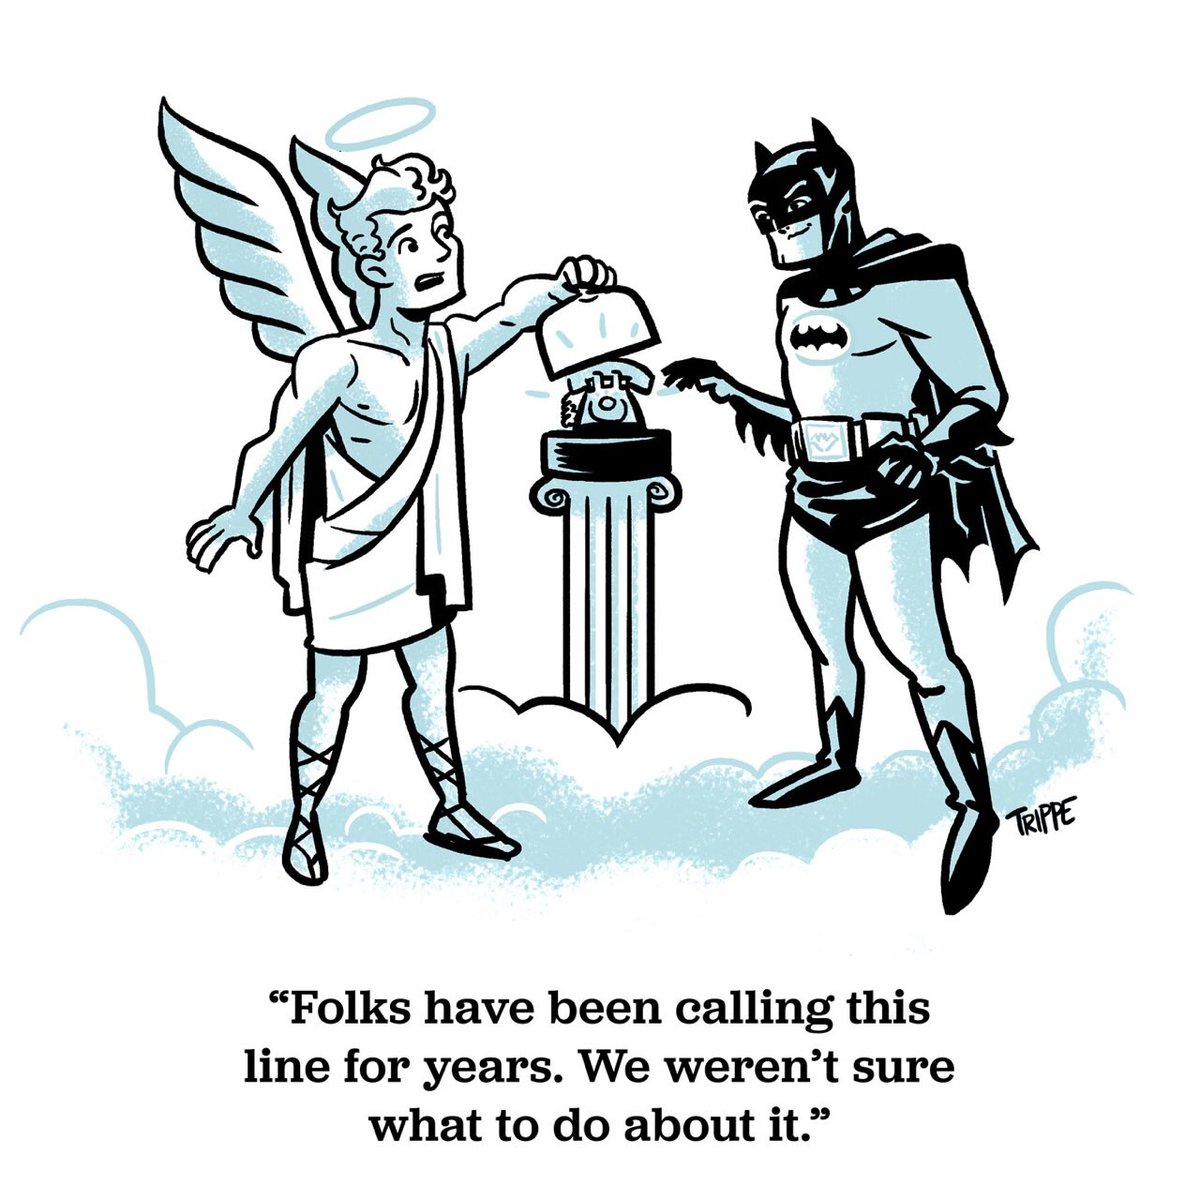 Godspeed, Caped Crusader. #adamwest #rip https://t.co/frHgHSH113